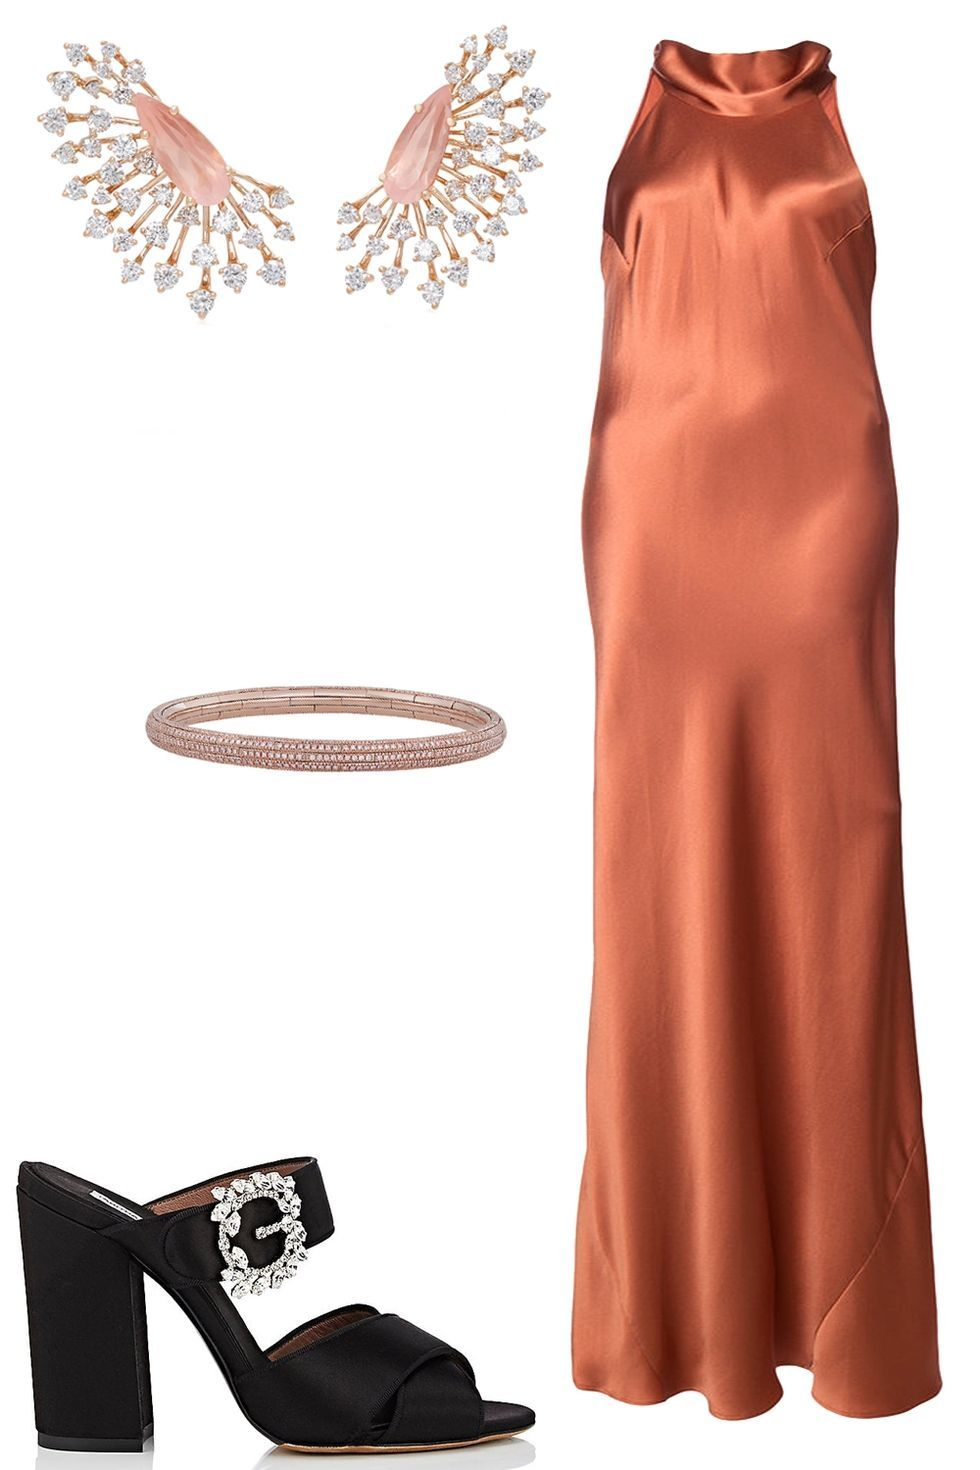 f0b4ca8f8d0 What to Wear to a Winter Wedding - Best Wedding Guest Dresses for Winter  2018